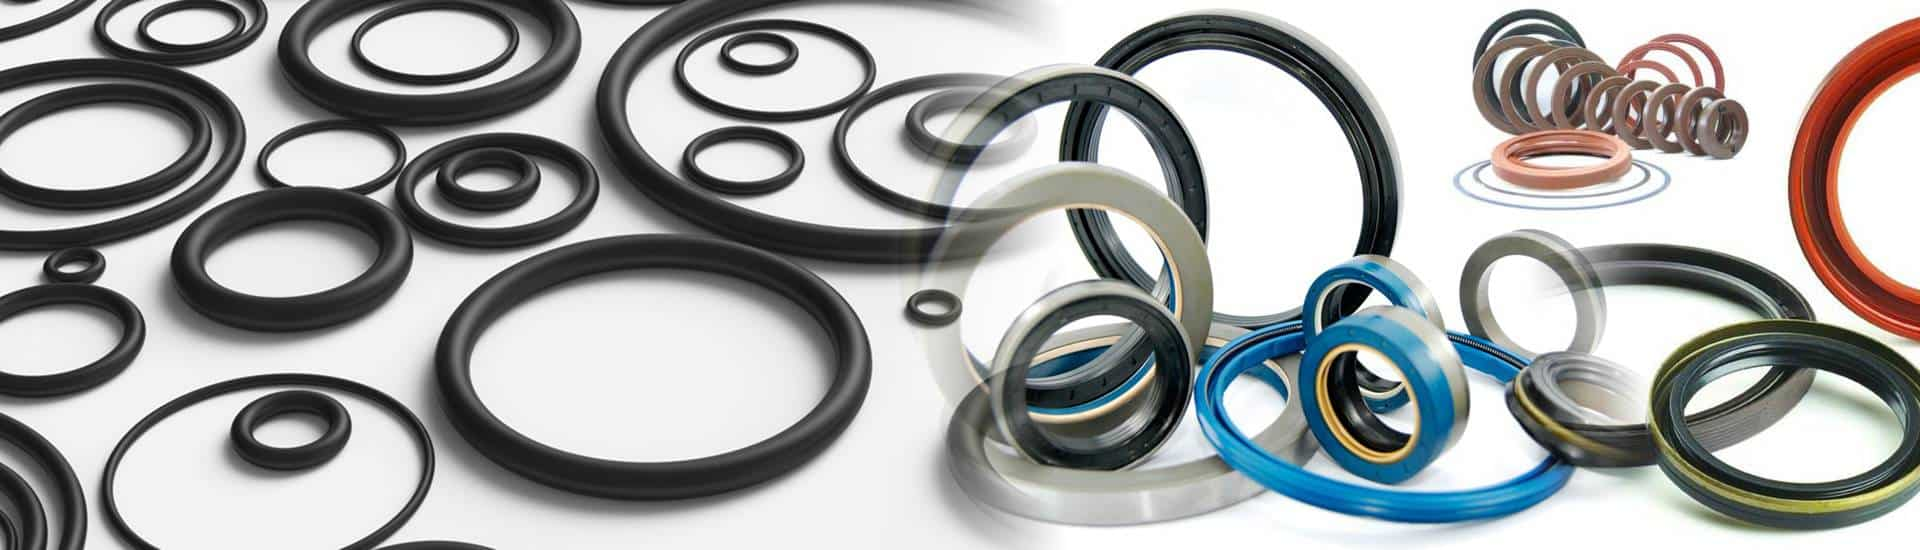 Leading provider of O-rings, Oil seals & Sealing Related Products ...